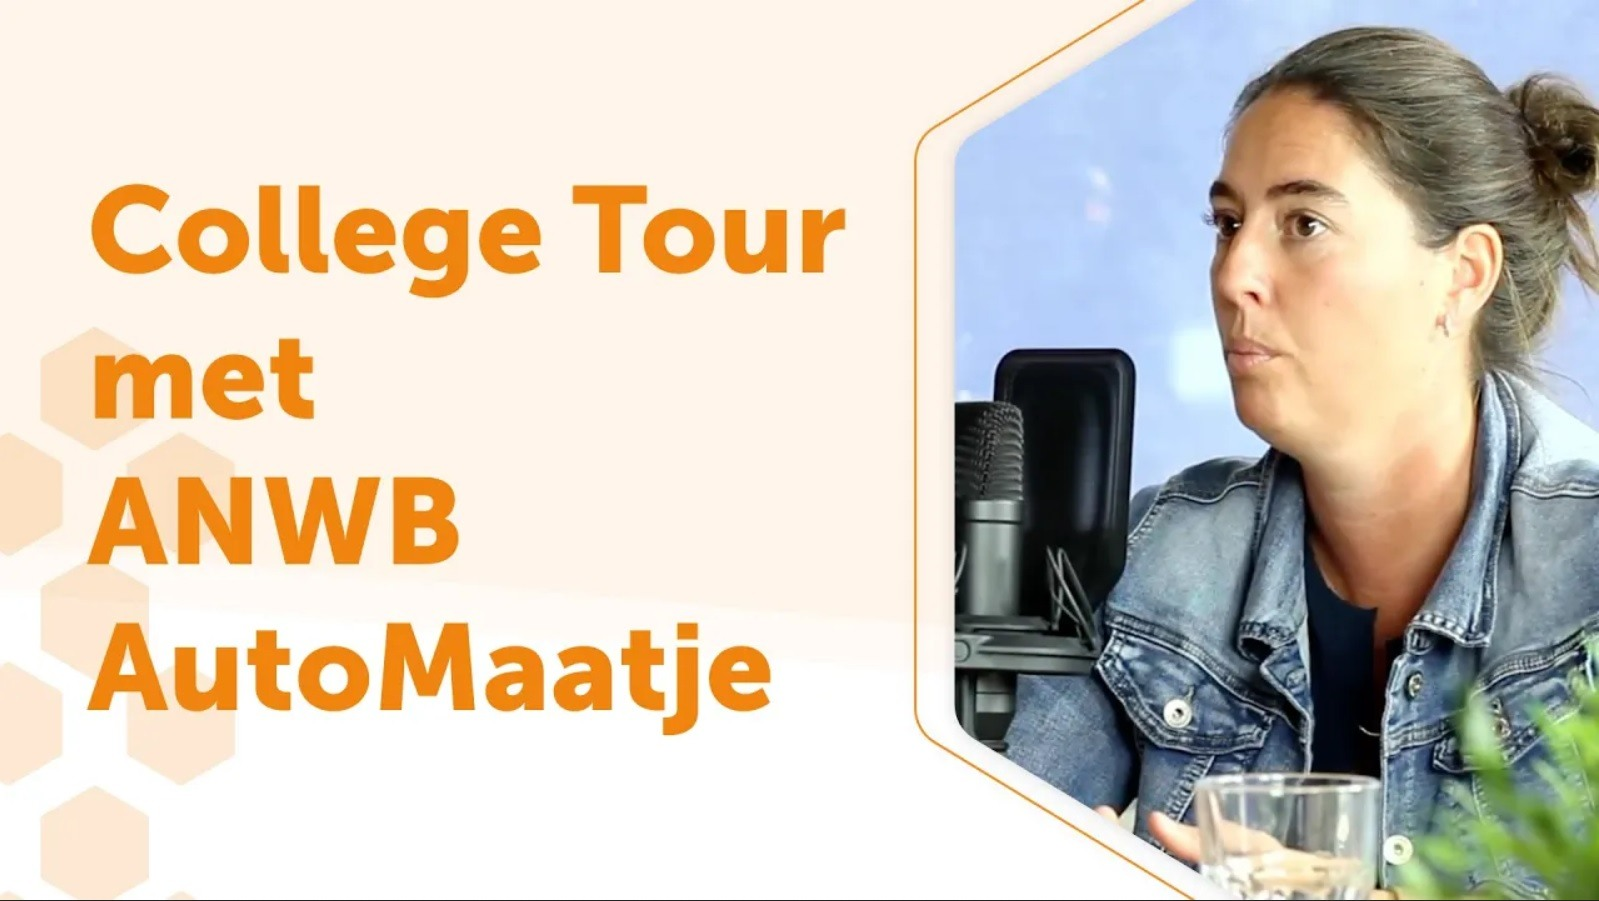 College Tour met ANWB AutoMaatje